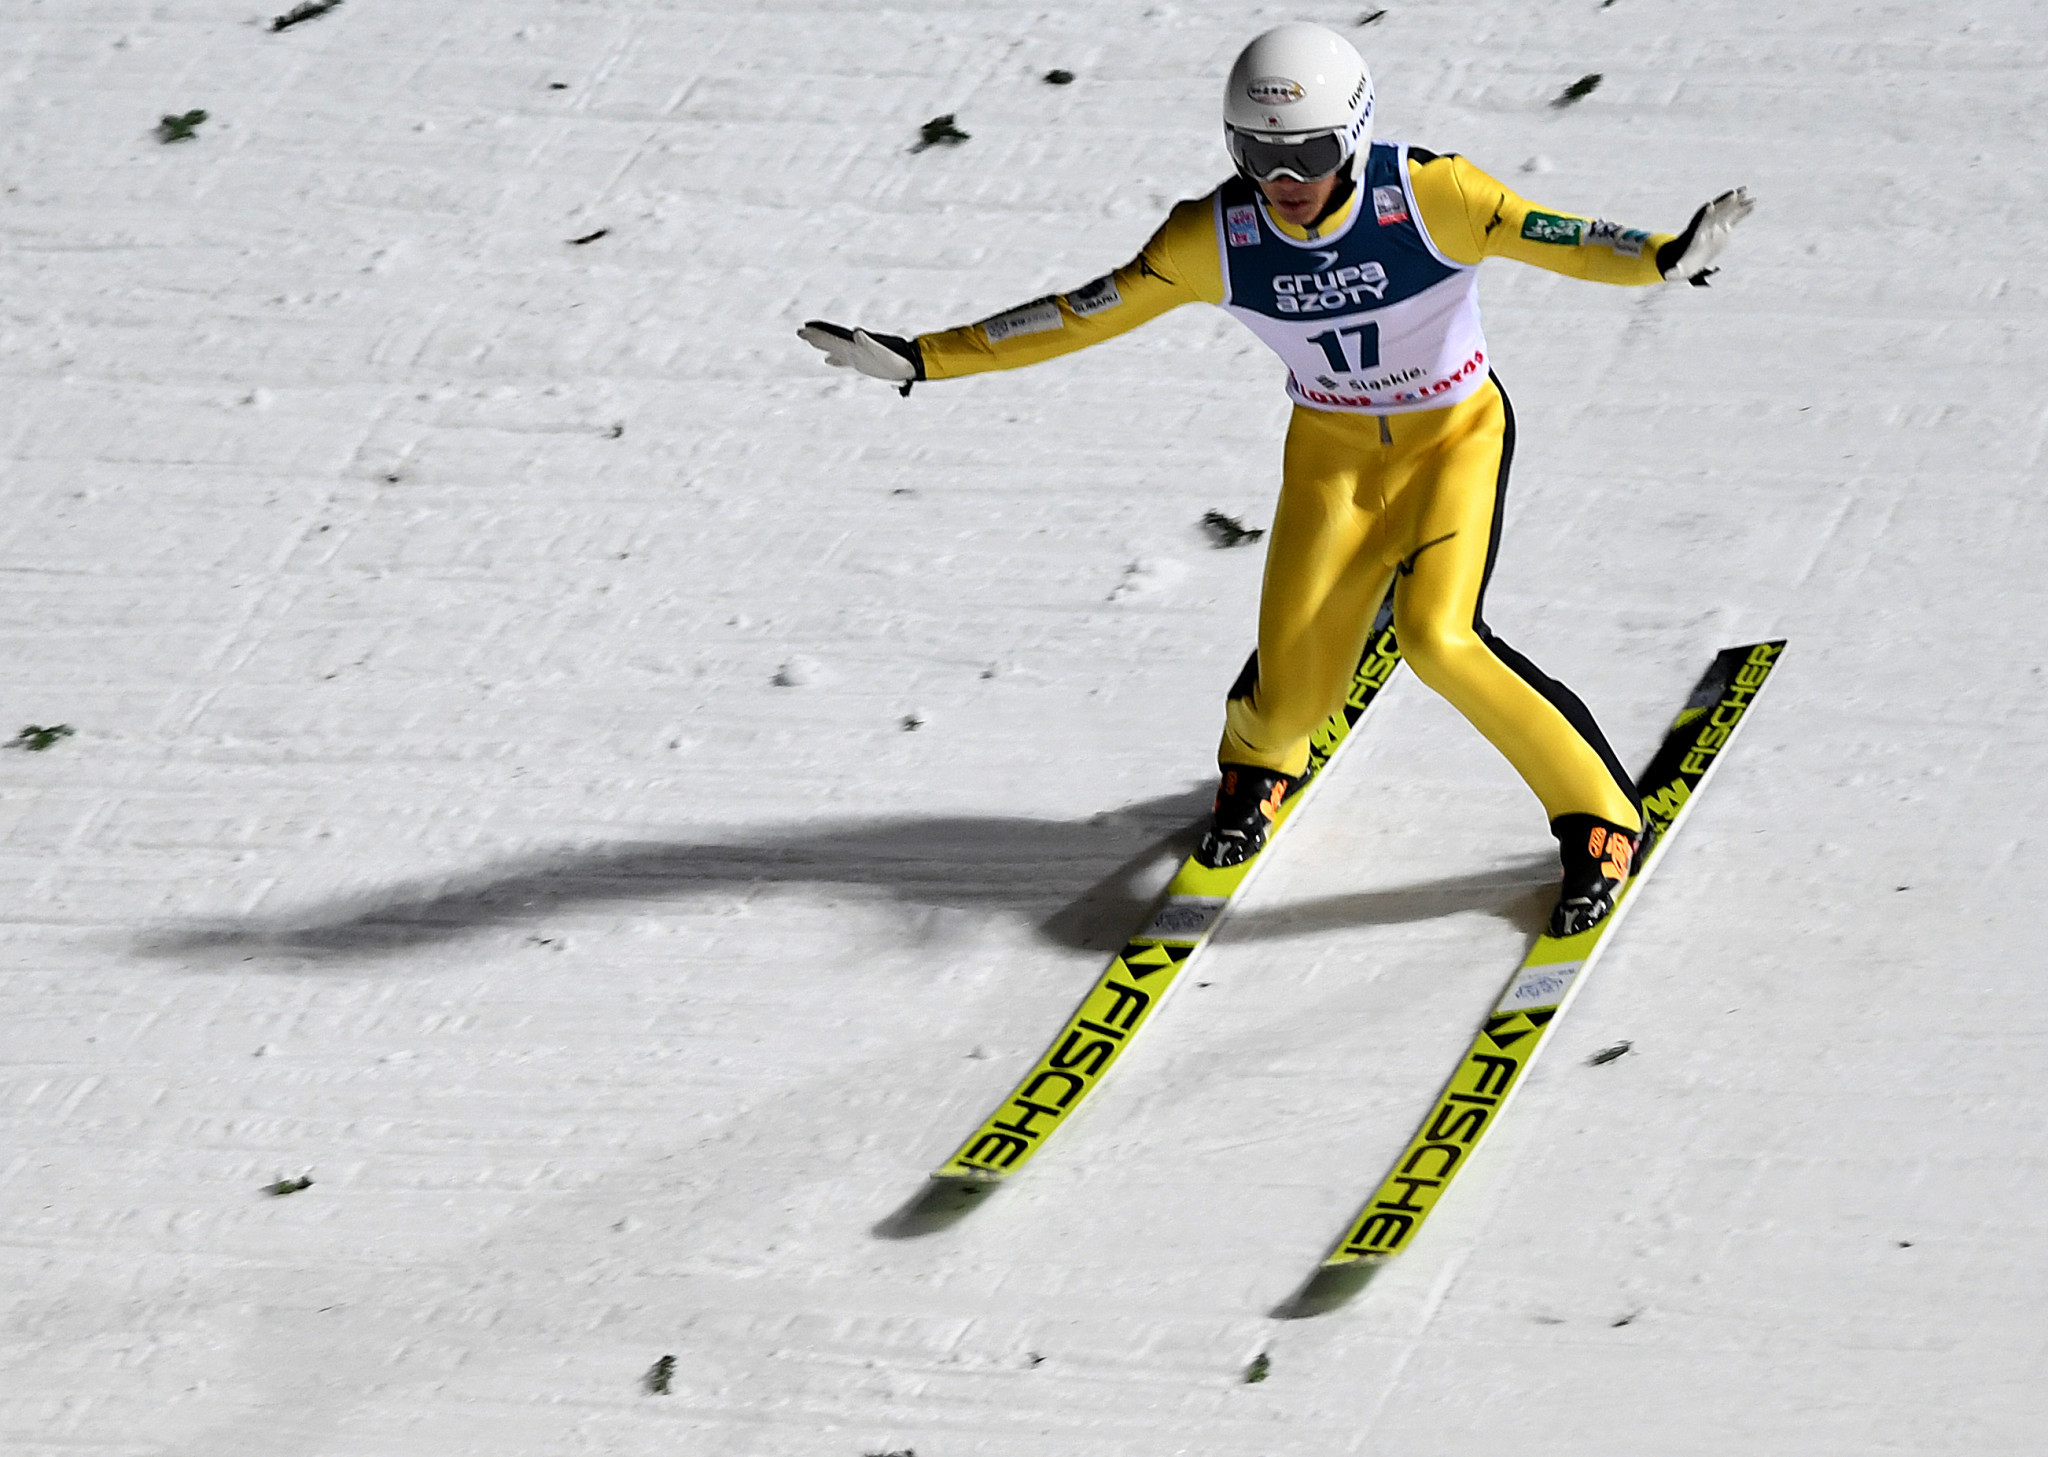 The Ski Jumping World Cup season will begin in Wisla in November ©Getty Images